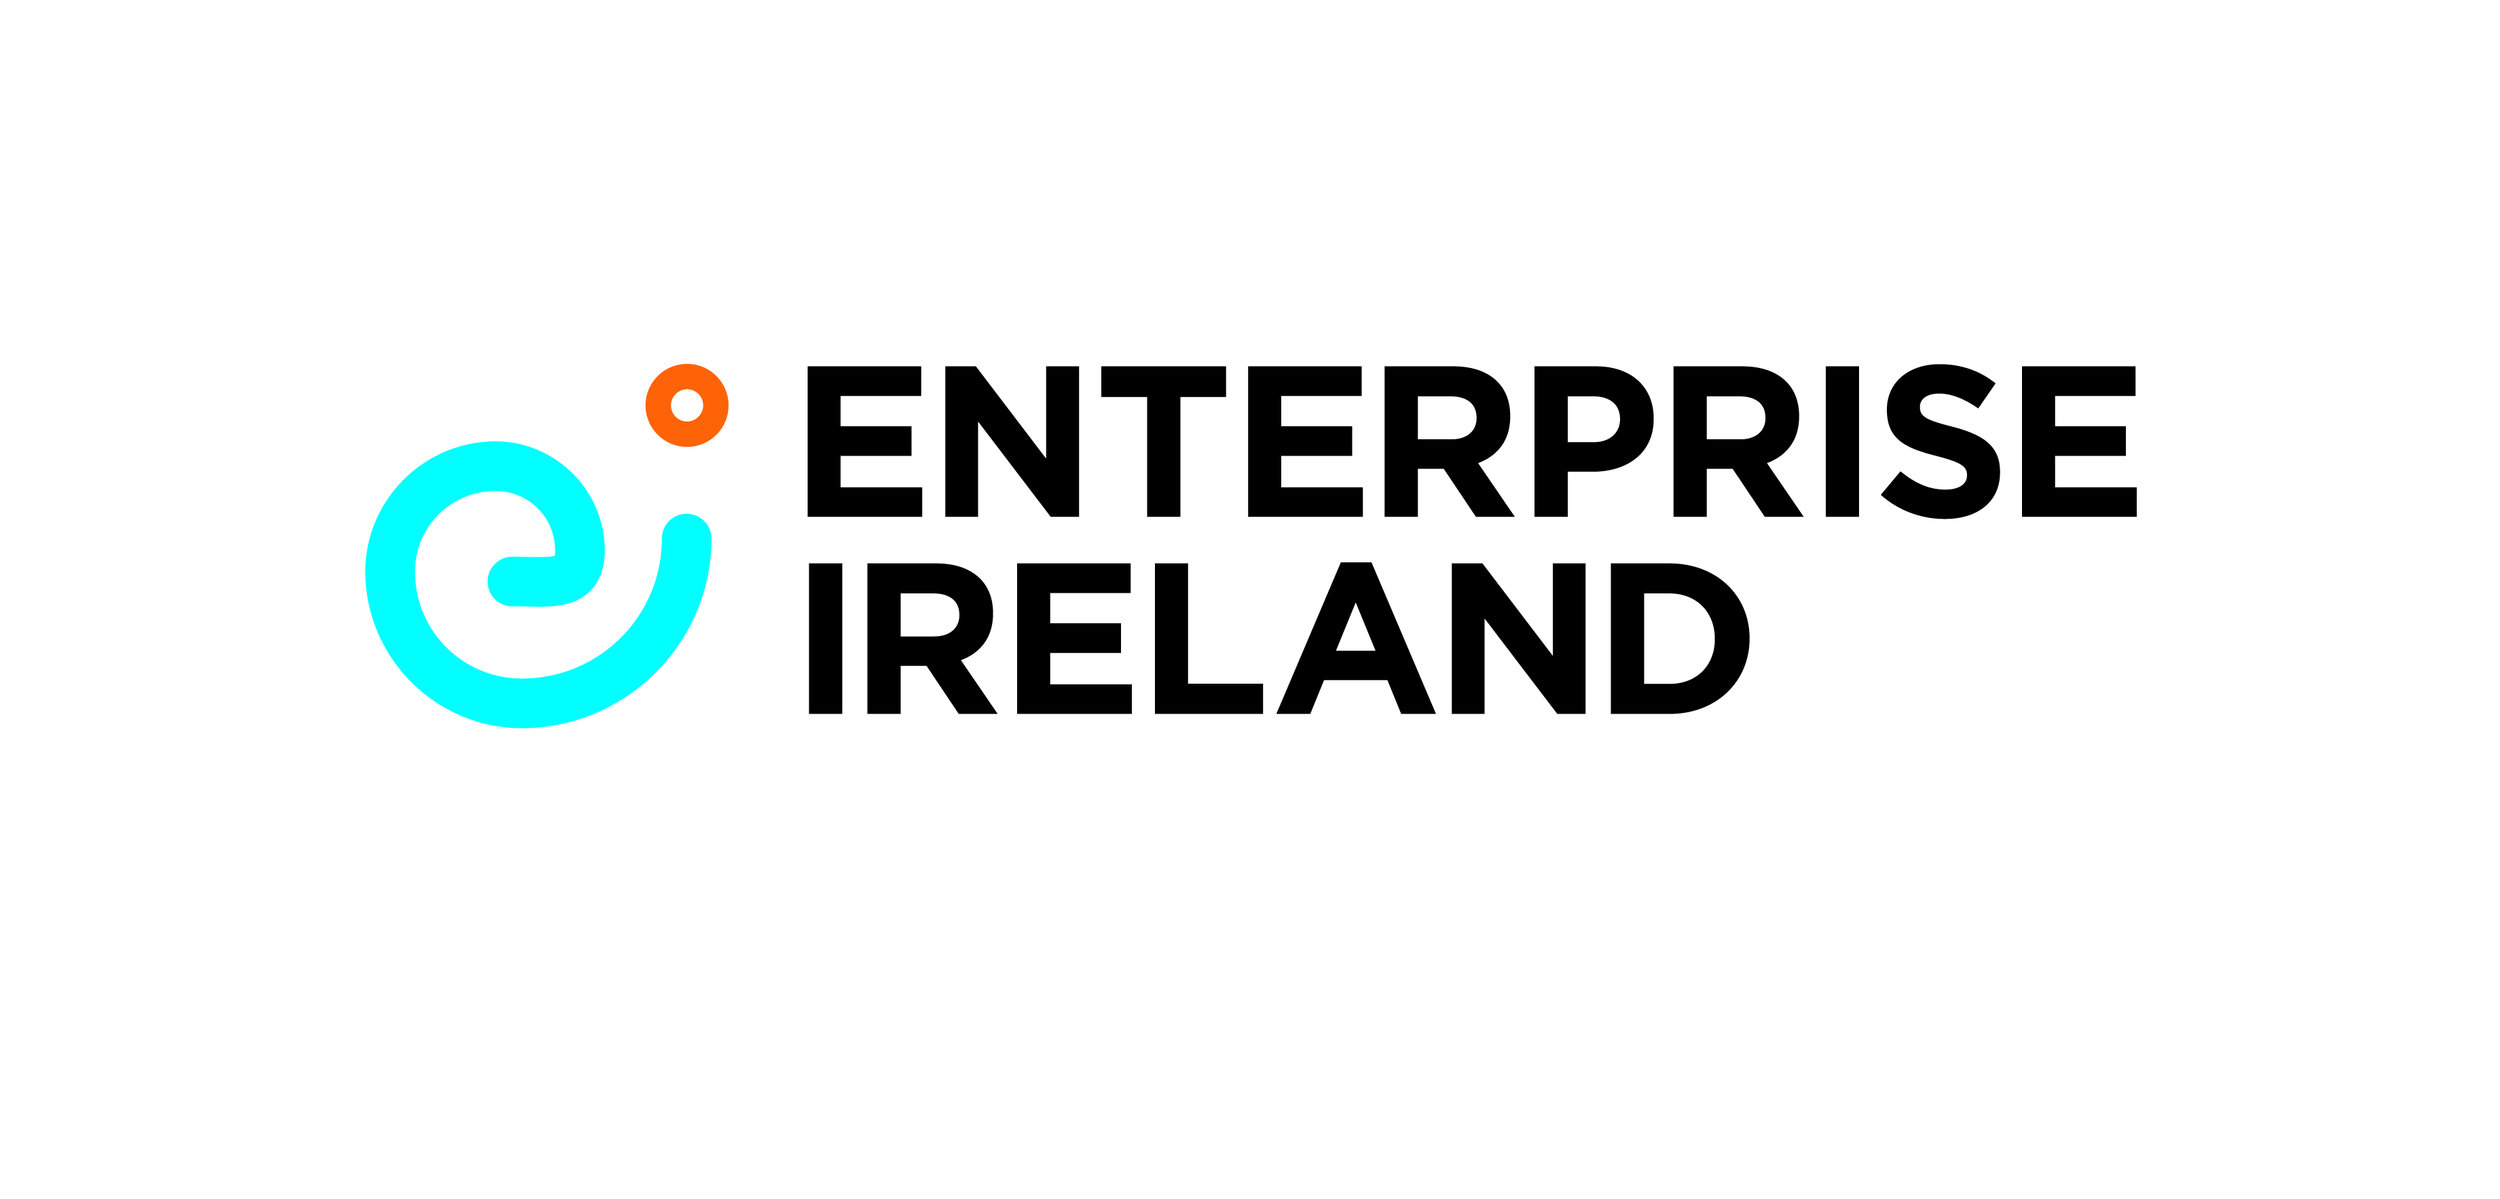 Enterprise Ireland Logo_CMYK_no tagline.jpg